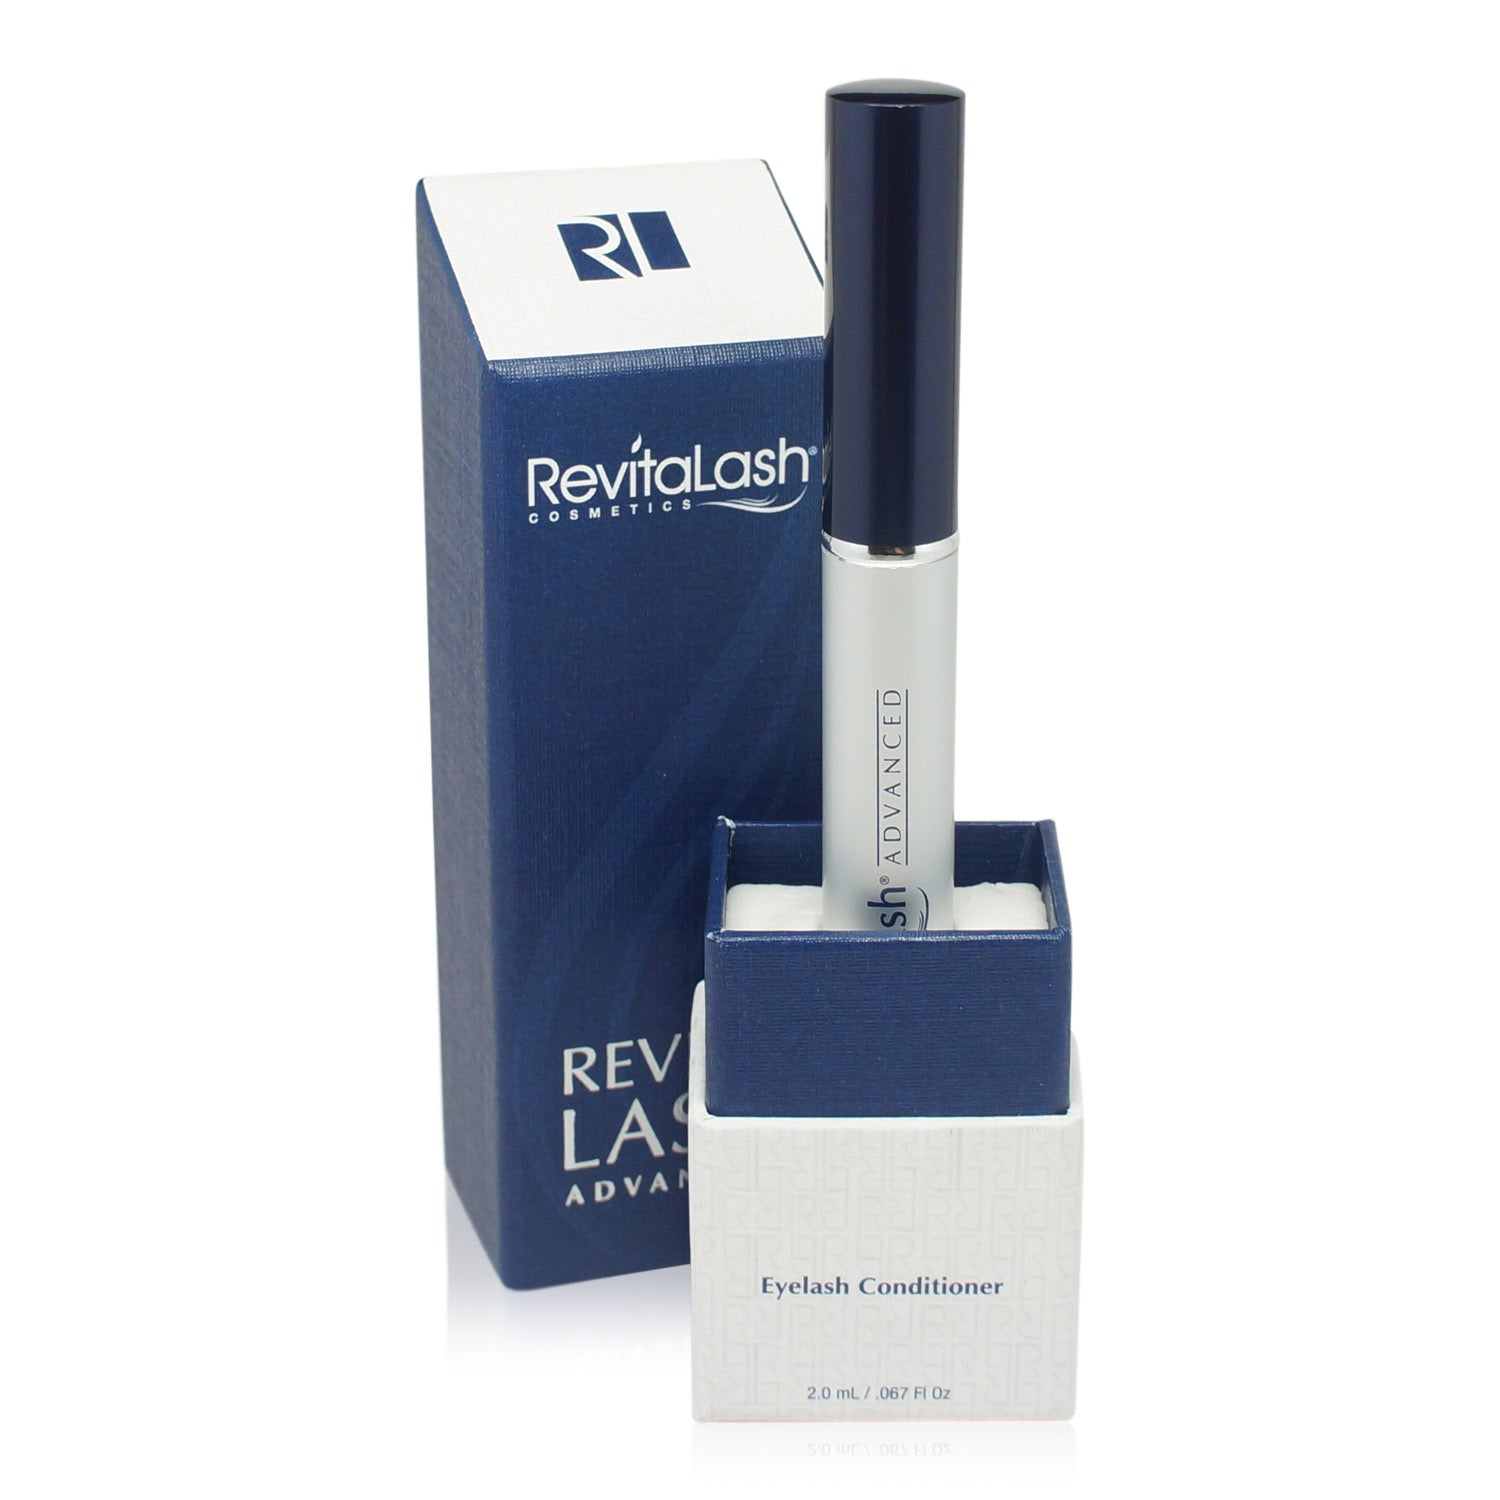 REVITALASH | REVITALASH  ADVANCED | 2.0ML